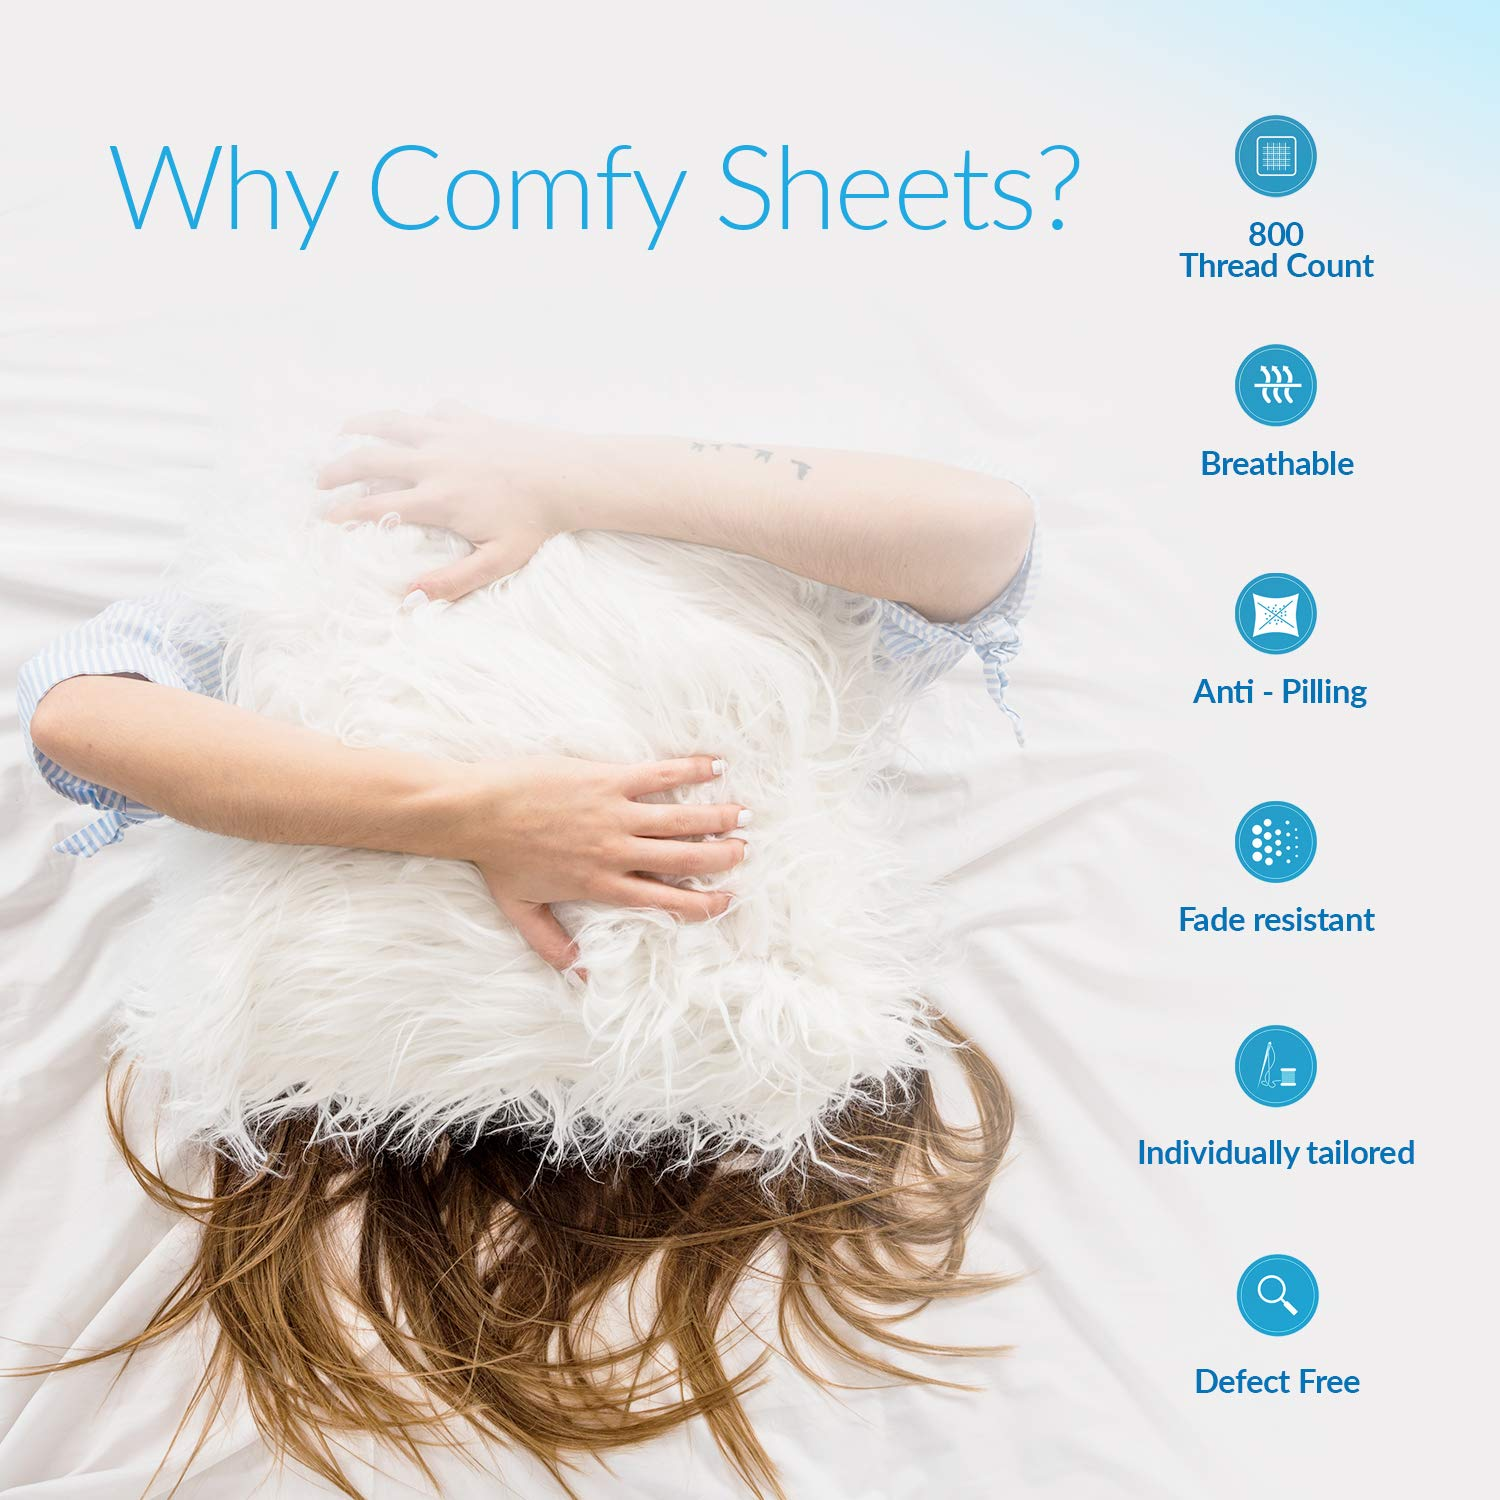 800 Thread Count 100% Pure Egyptian Cotton - Sateen Weave Premium Bed Sheets, 4- Piece White Queen- Size Luxury Sheet Set, Fits mattresses Upto 18'' deep Pocket by   Comfy Sheets (Image #5)